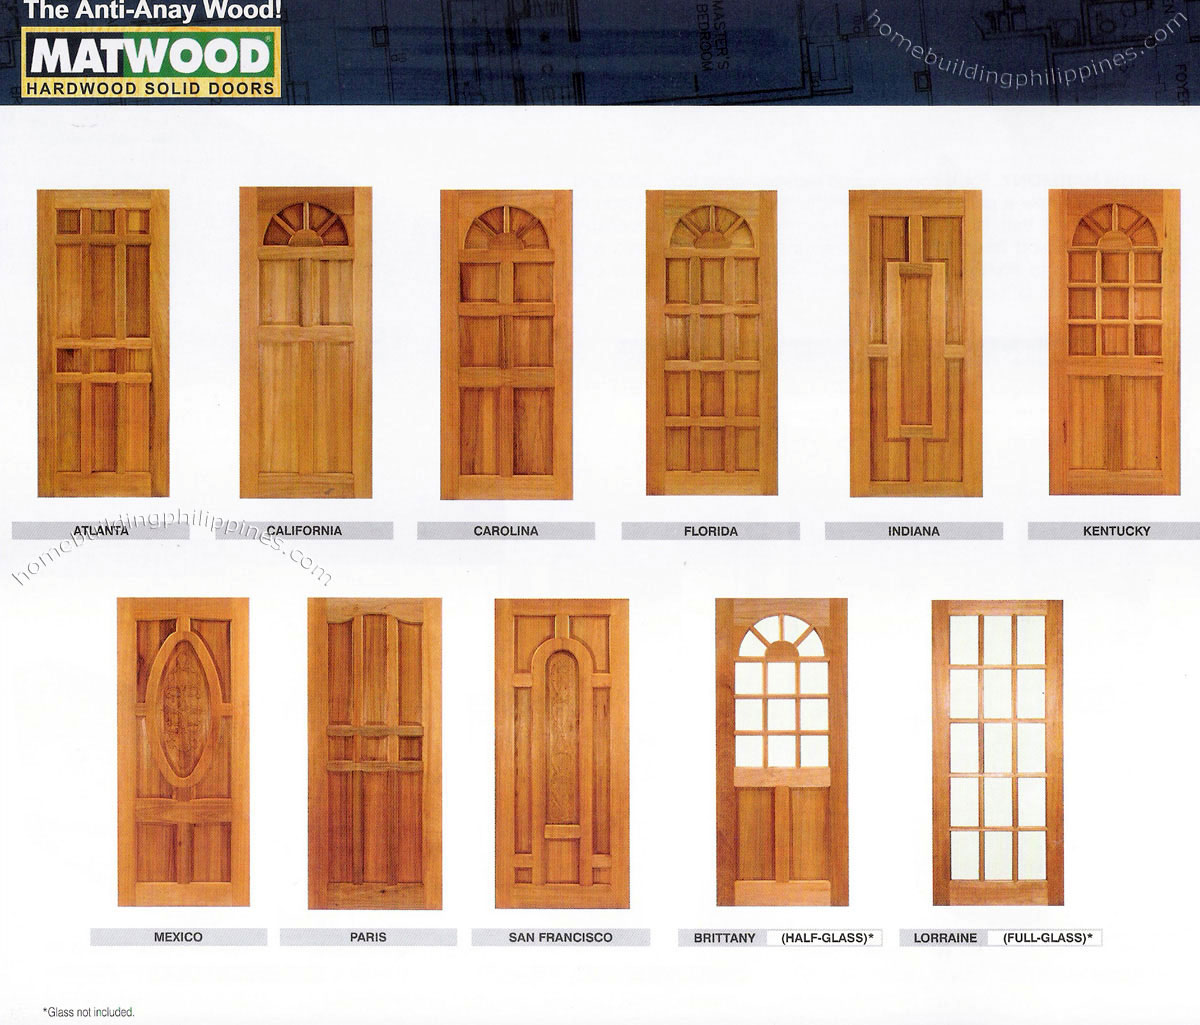 Solid hardwood doors wood door design philippines for Wood window door design